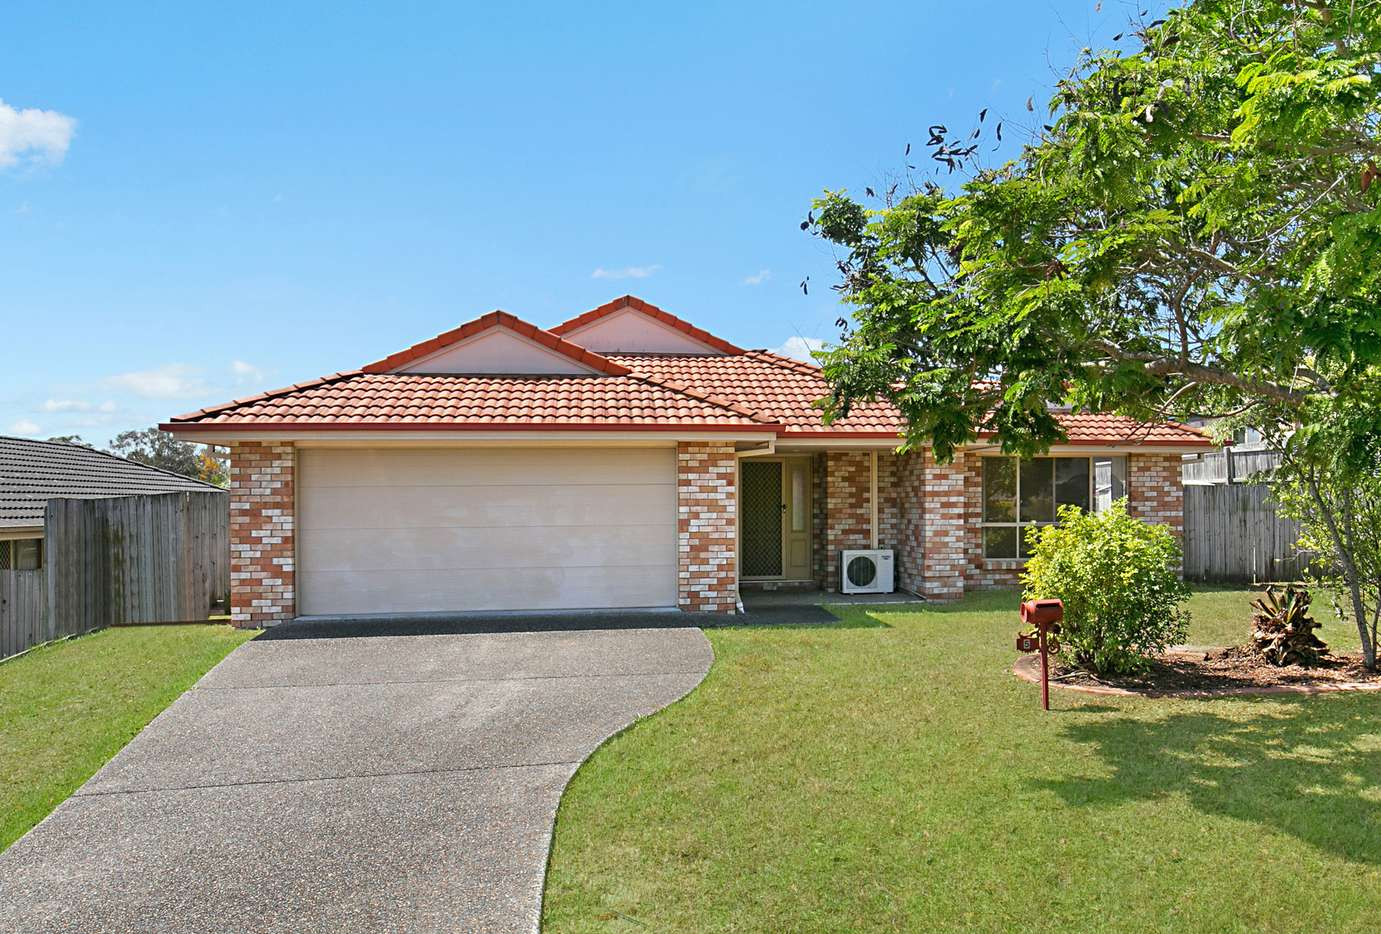 Main view of Homely house listing, 5 Crenton Court, Heritage Park, QLD 4118